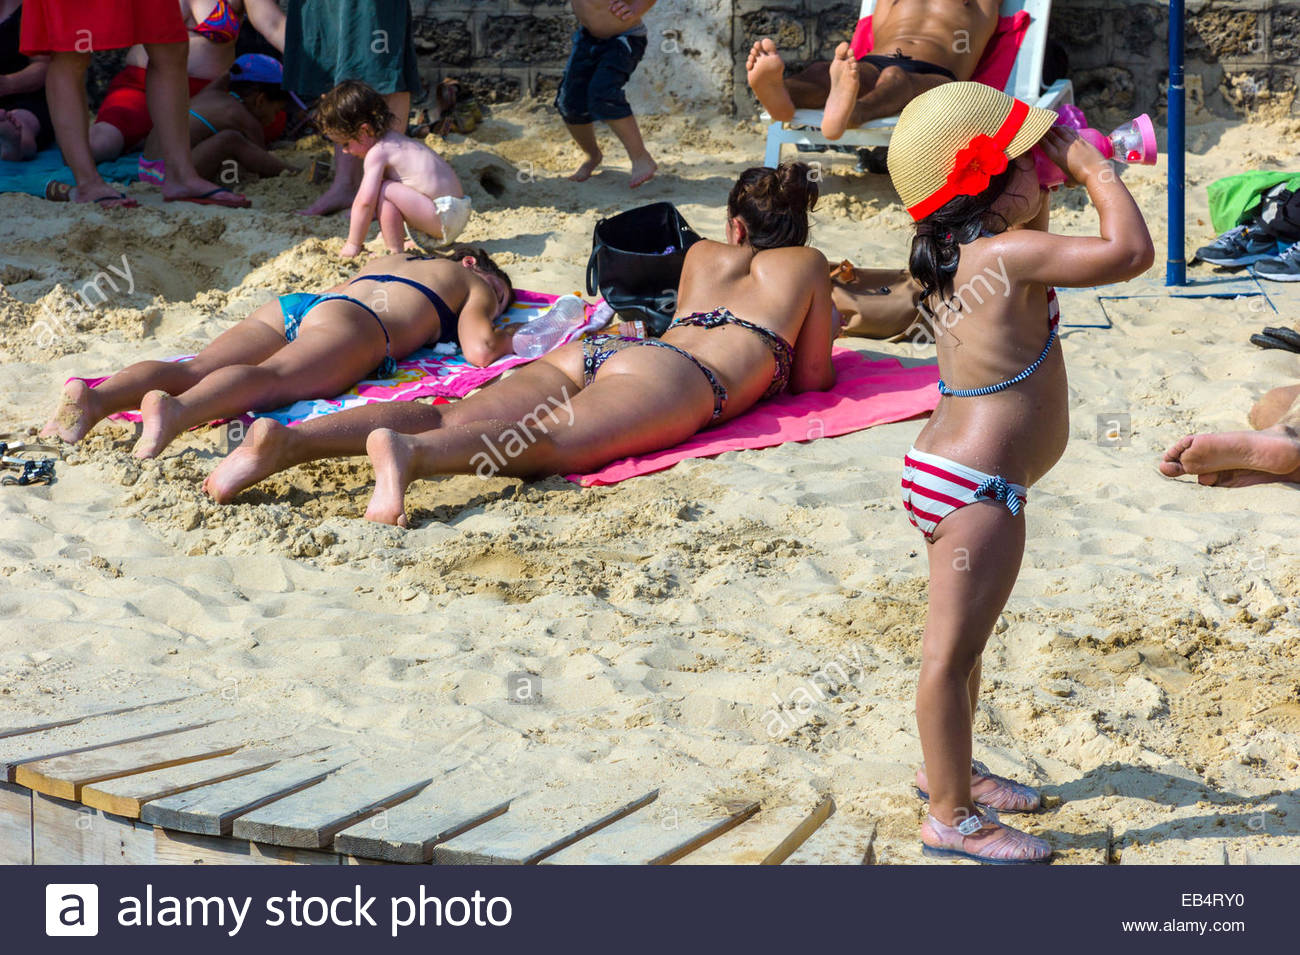 A girl plays at Paris Plage, an artificial, temporary beach on the bank of the Seine River. Stock Photo